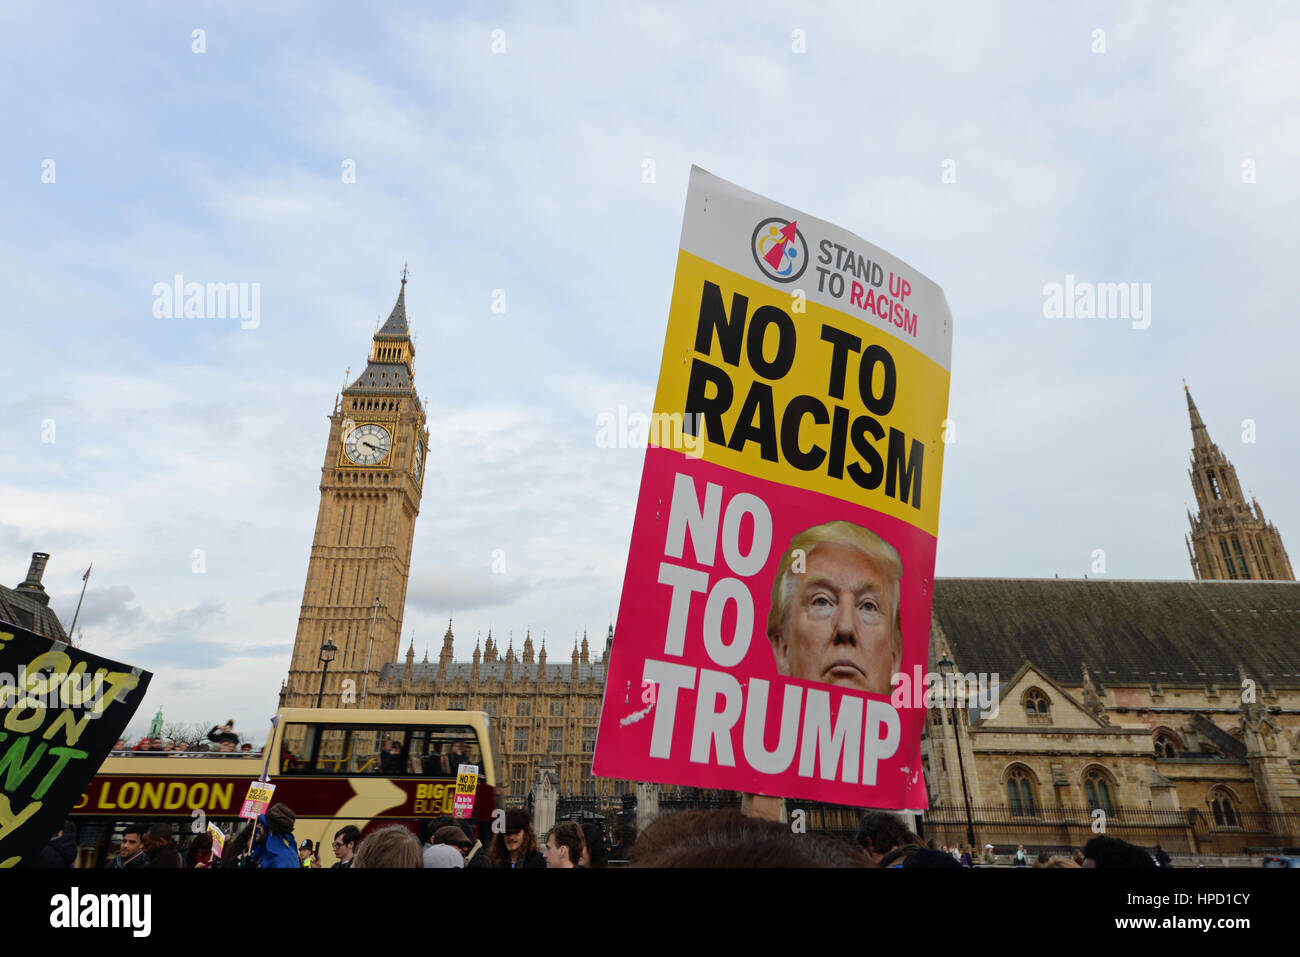 An anti racism, anti Donald Trump placard outside the Palace of Westminster, London, during a demonstration rally - Stock Image